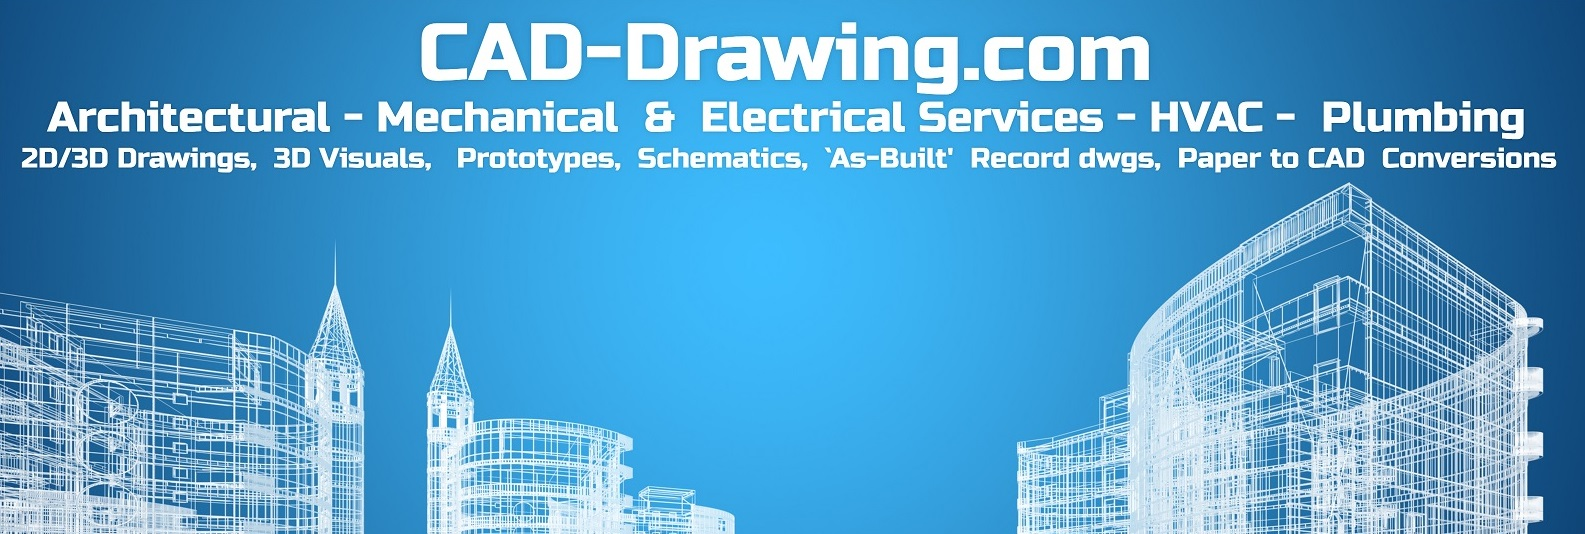 Cad Drawing Services 3d Drafting Visuals Revit Hvac Plumbing Info